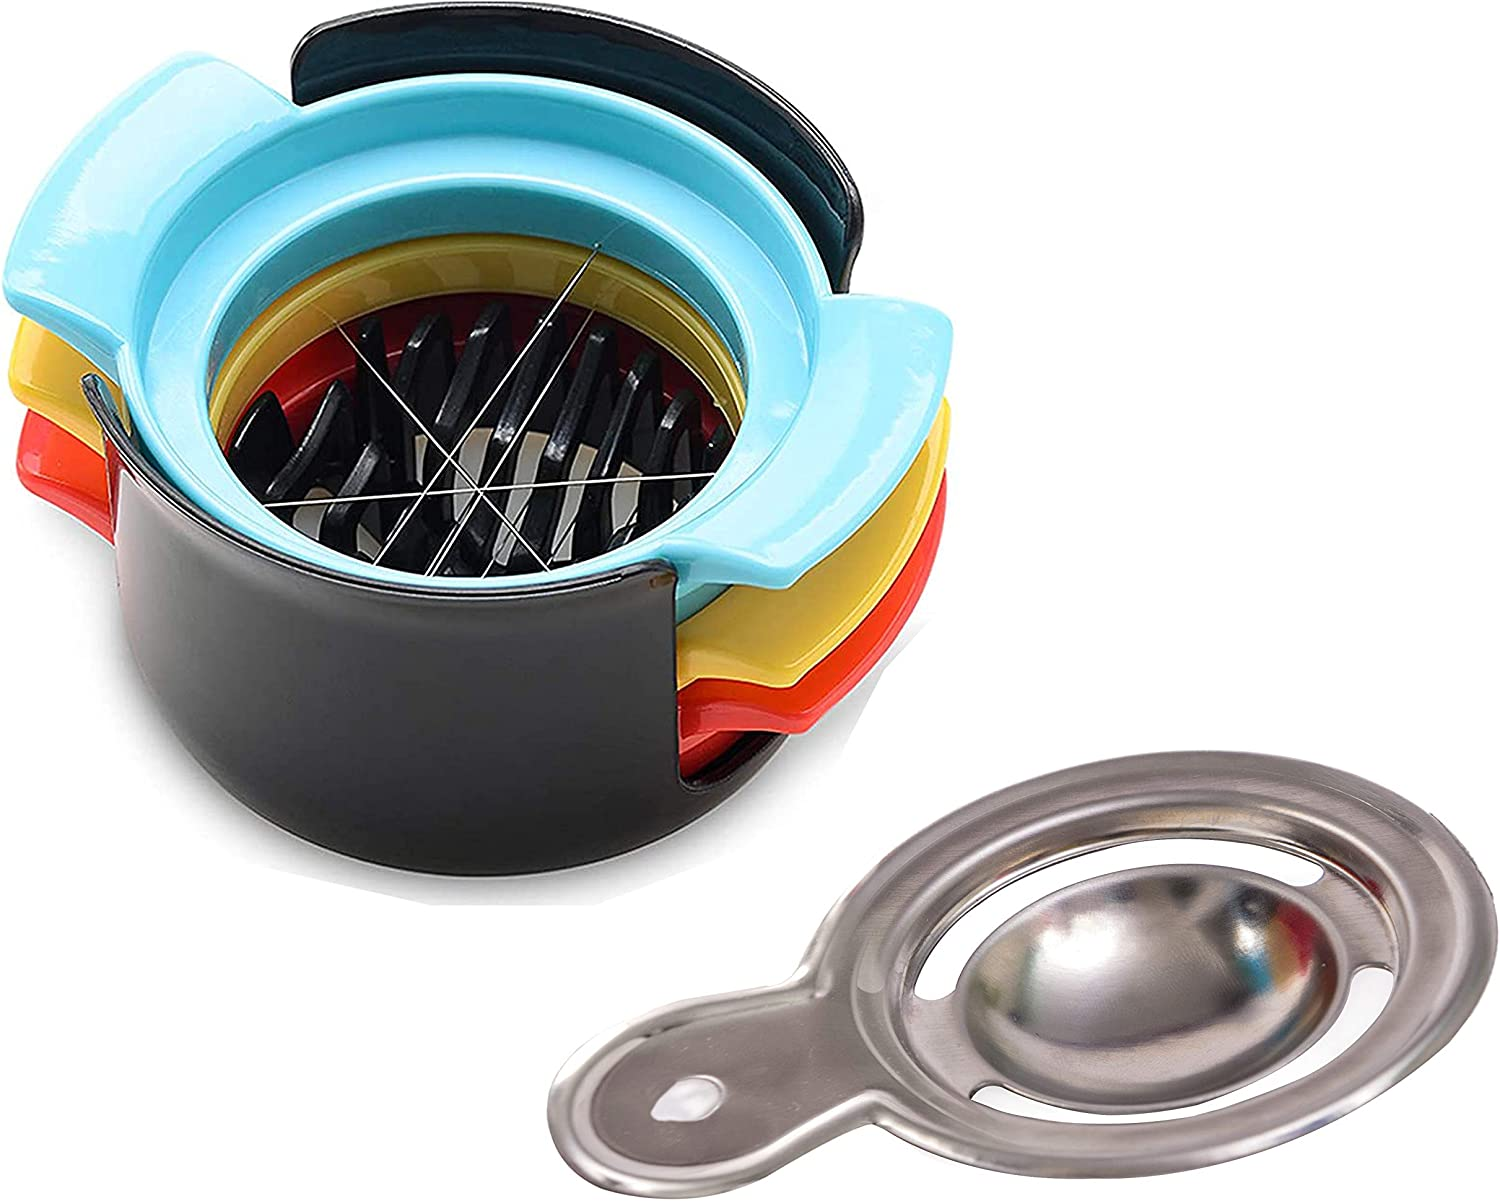 Egg Slicer for Boiled Eggs and sort Fruits,Stainless Steel Wire with 3 Slicing Styles & Egg Separator (2 pack)